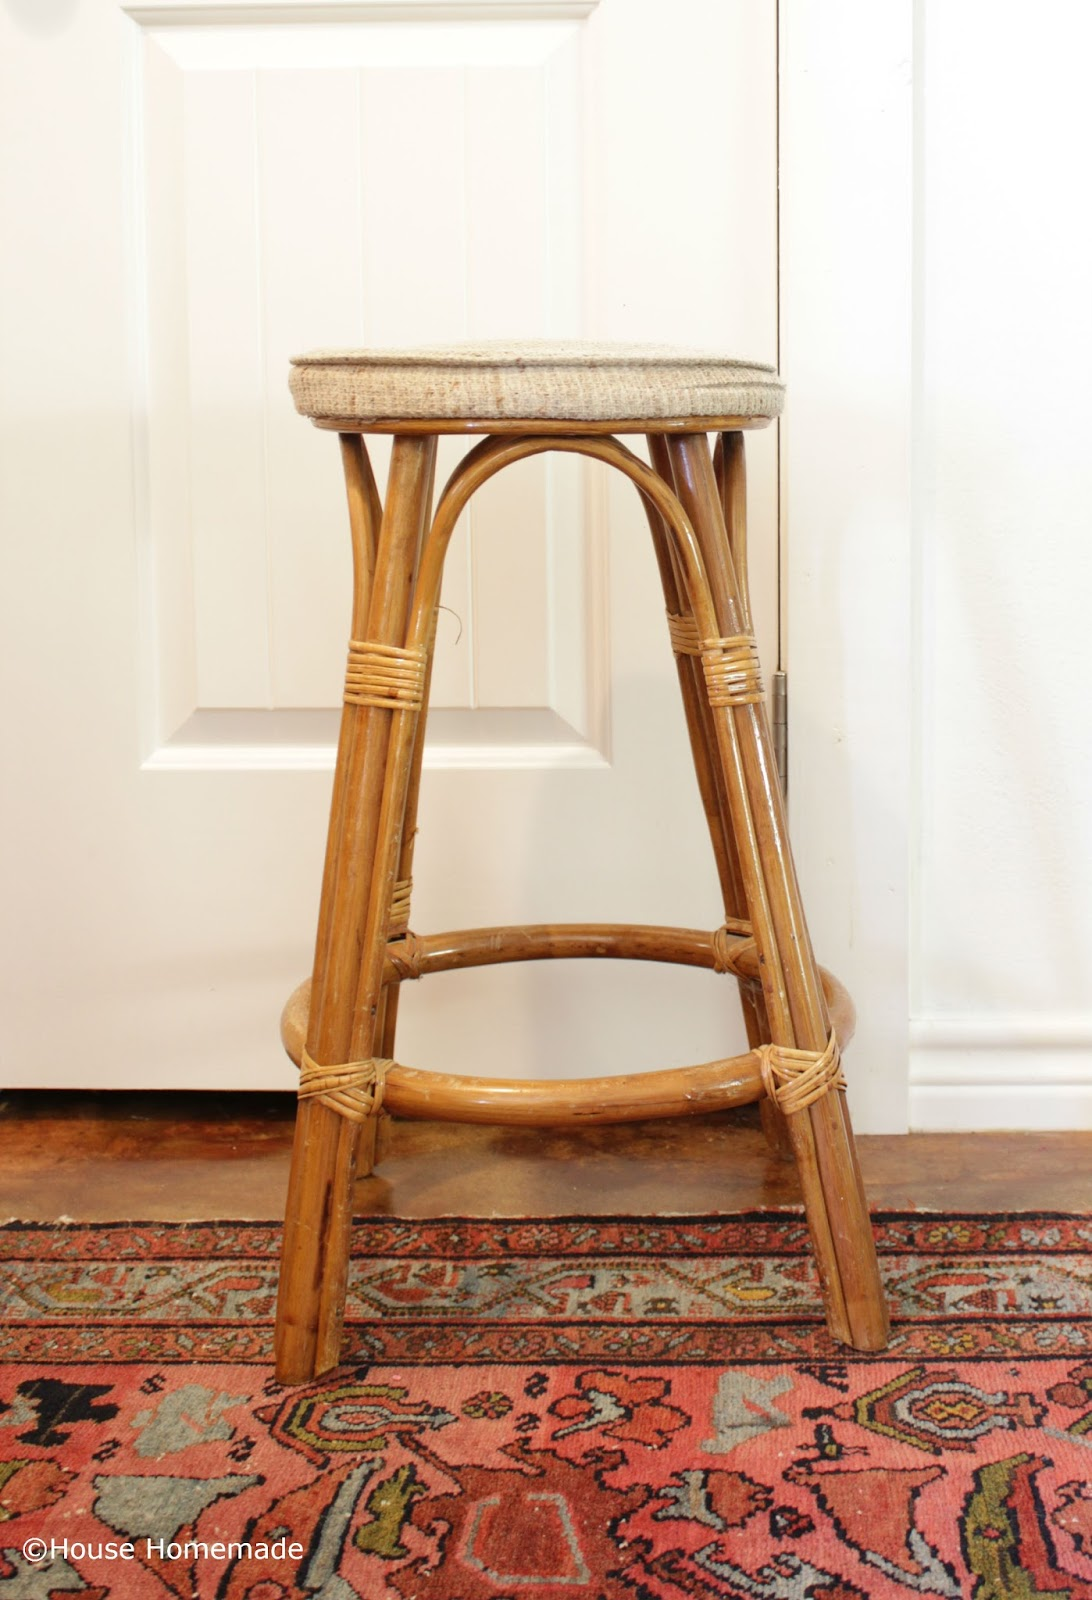 European Bistro Stool With Paint And Fabric   House Homemade